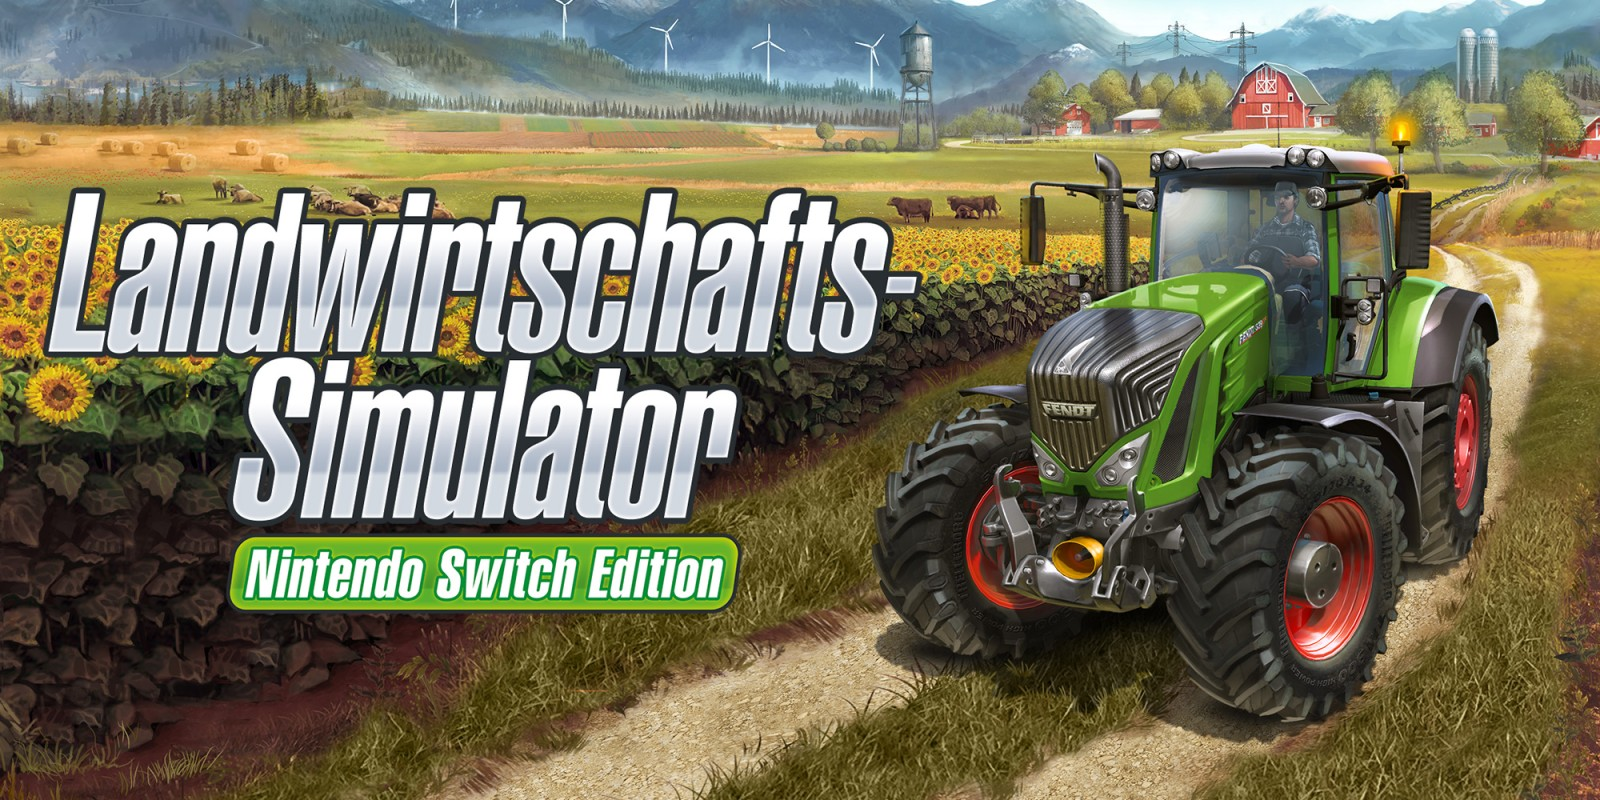 Landwirtschafts-Simulator Nintendo Switch Edition